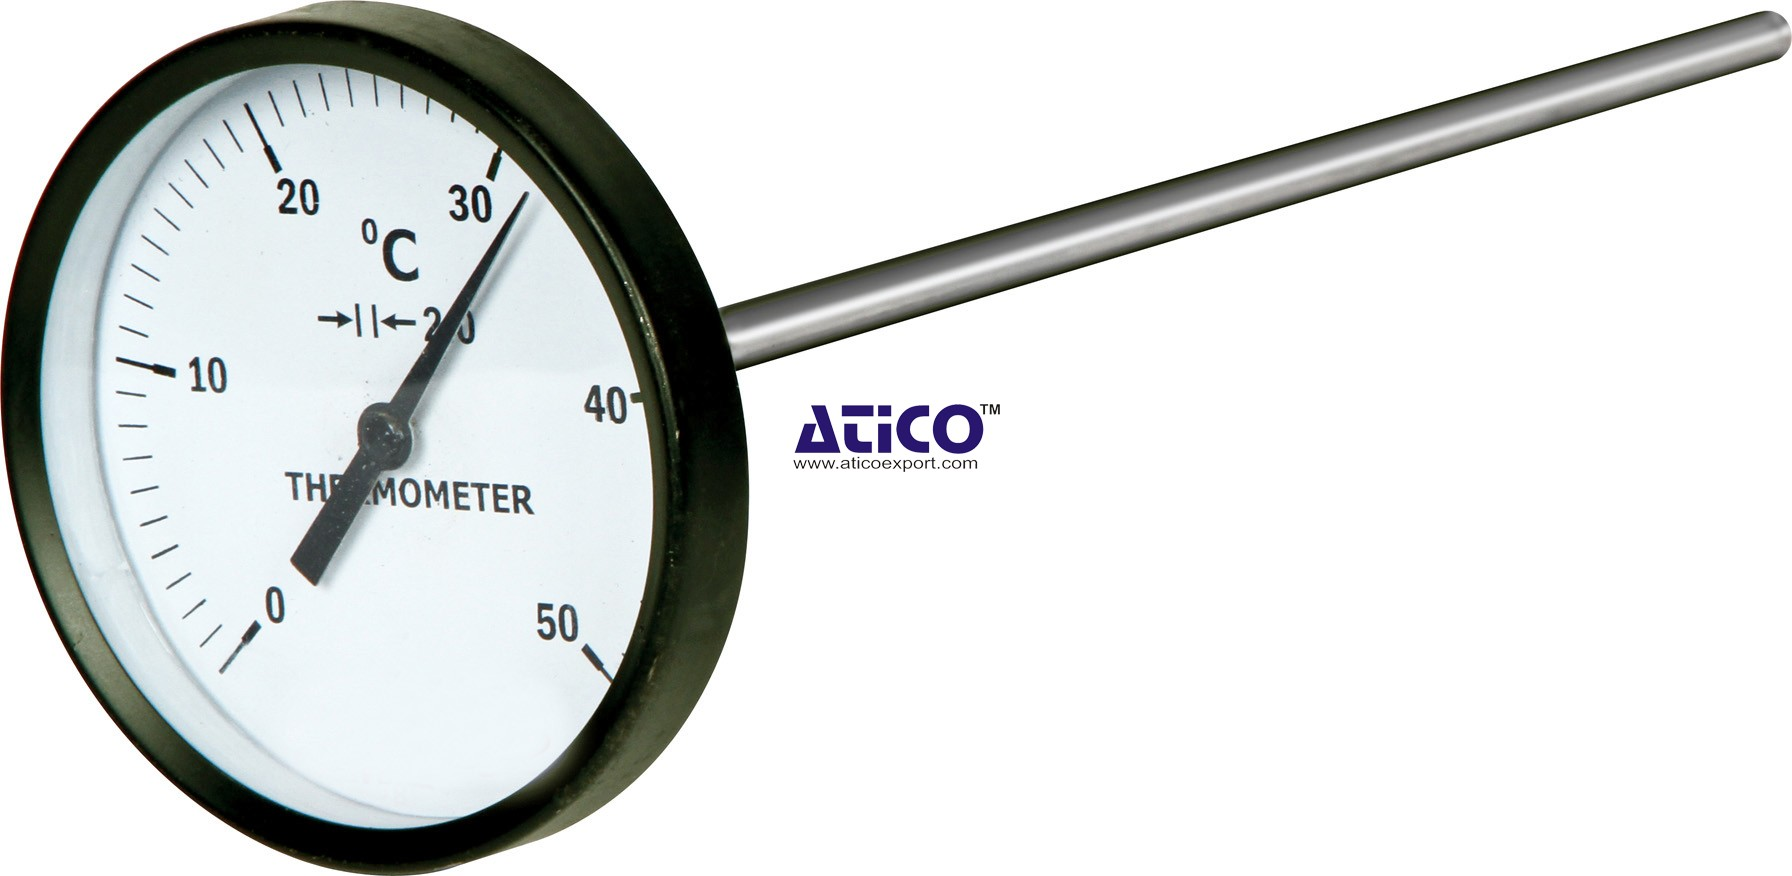 Thermometer Laboratory Apparatus Concrete Thermometer Manufacturers Supplier And Exporter